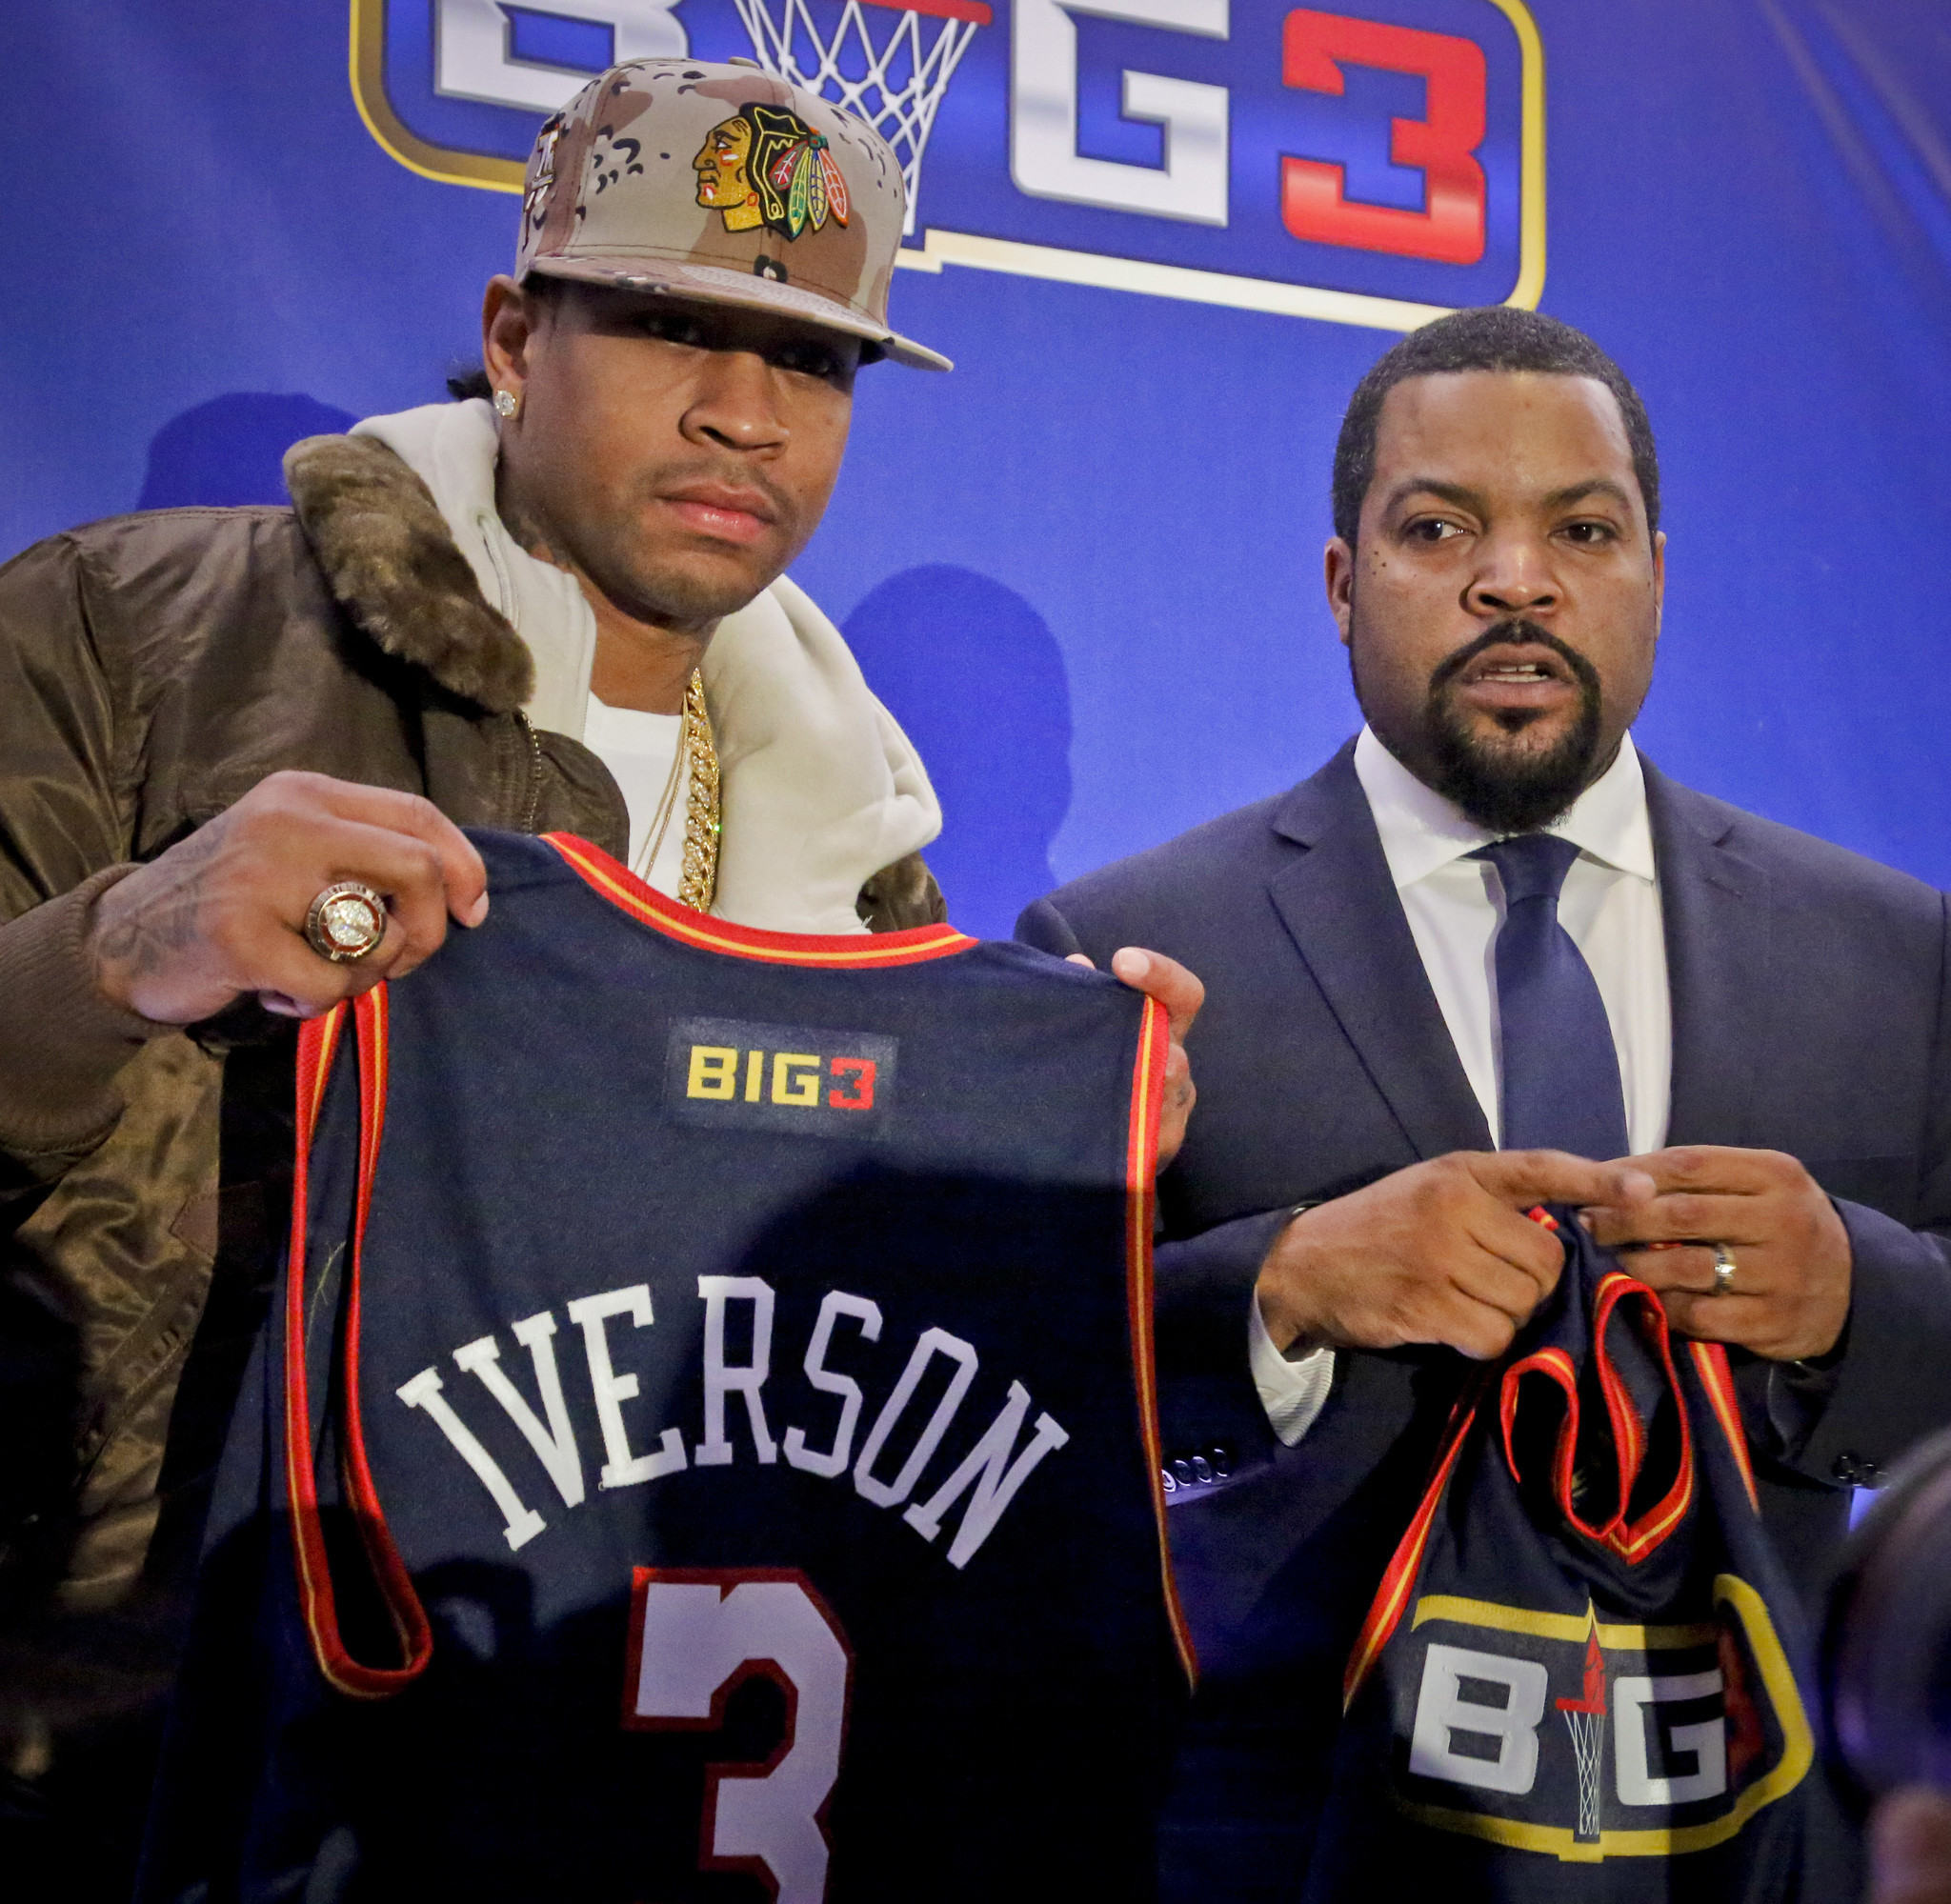 Allen Iverson Ice Cube launch 3 on 3 basketball league featuring